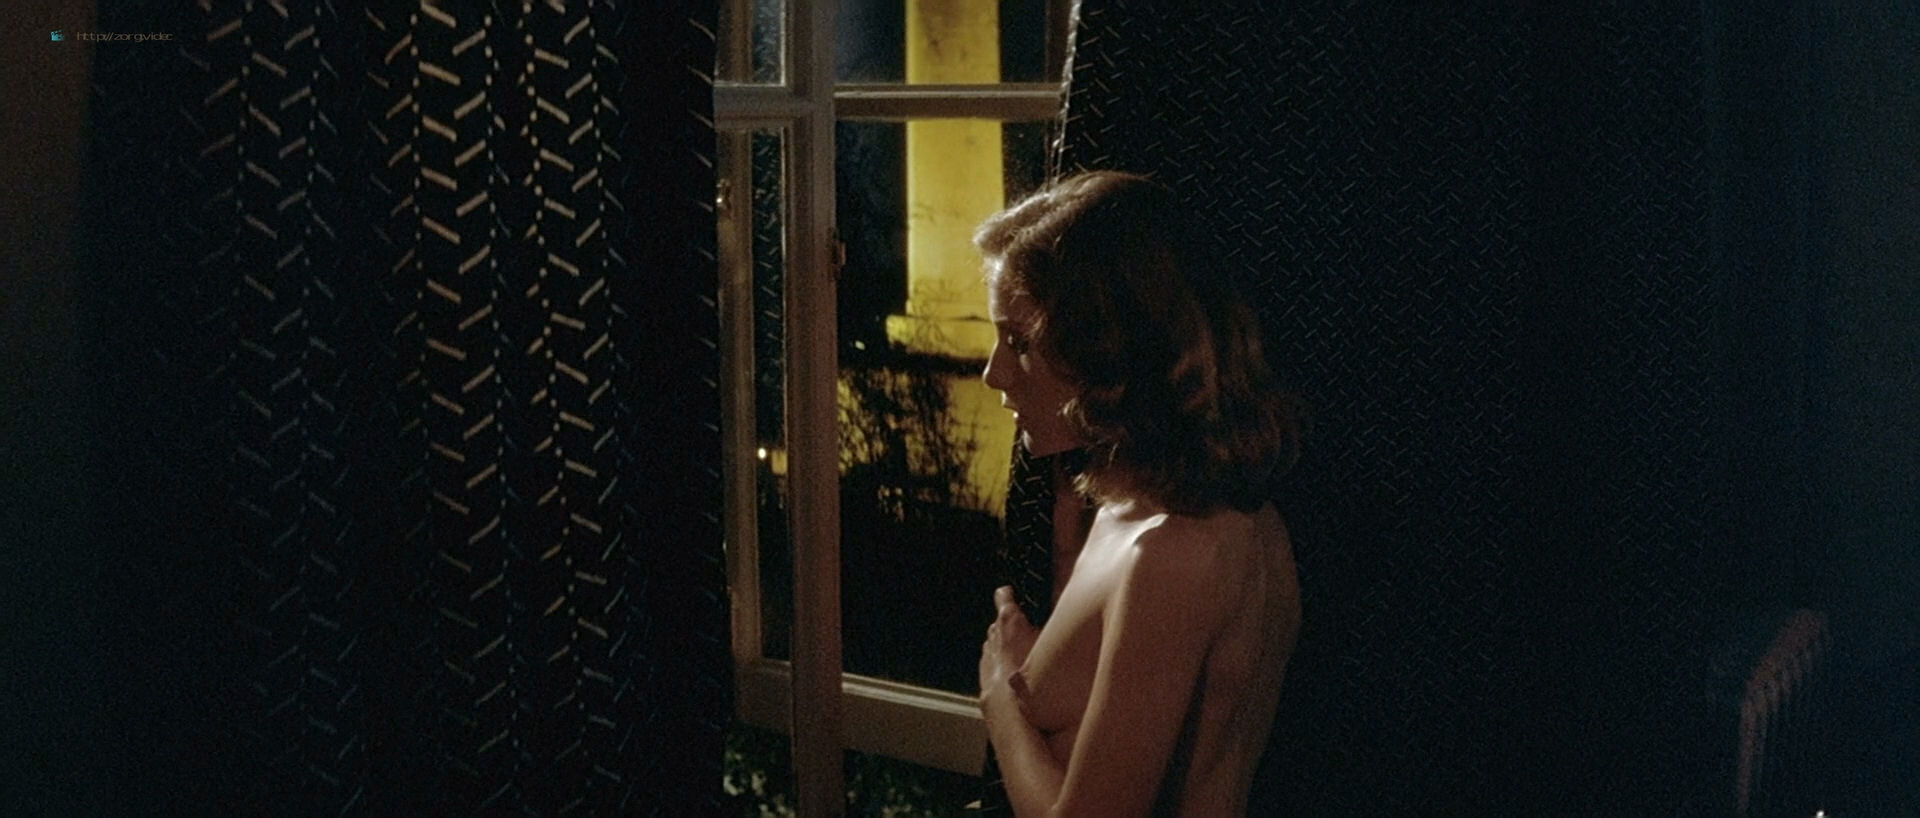 Isabelle Huppert nude topless and butt Elizabeth McGovern nude - The Bedroom Window (1987) HD 1080p BluRay (9)